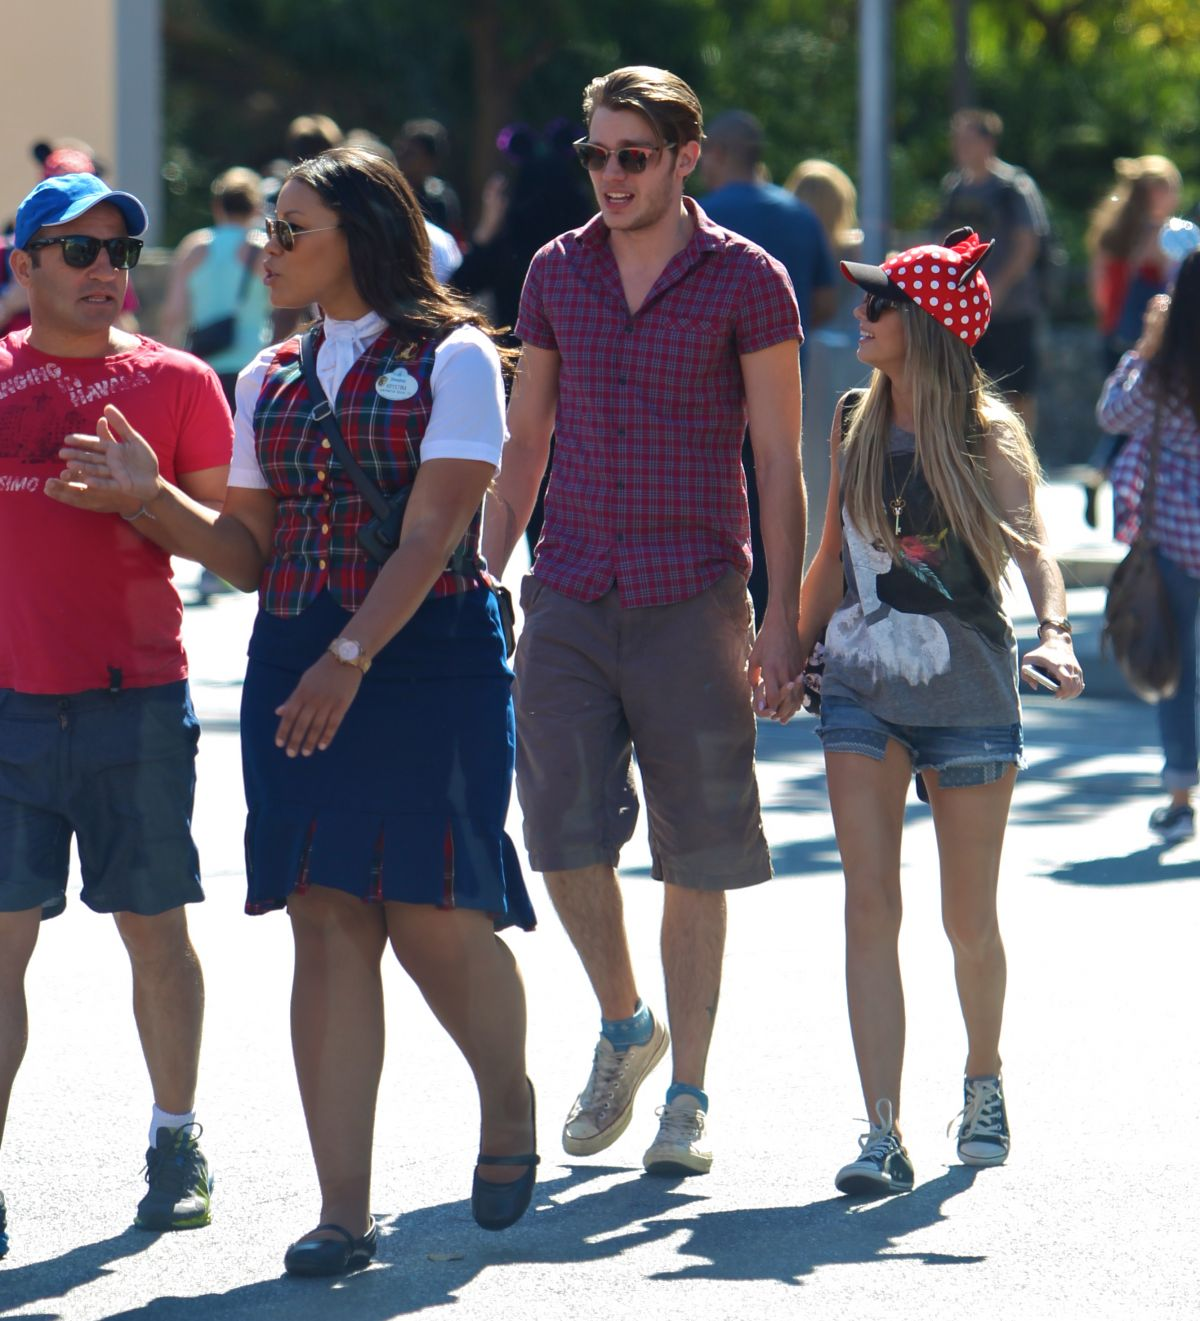 ... HYLAND and Dominic Sherwood Out Disneyland - HawtCelebs - HawtCelebs